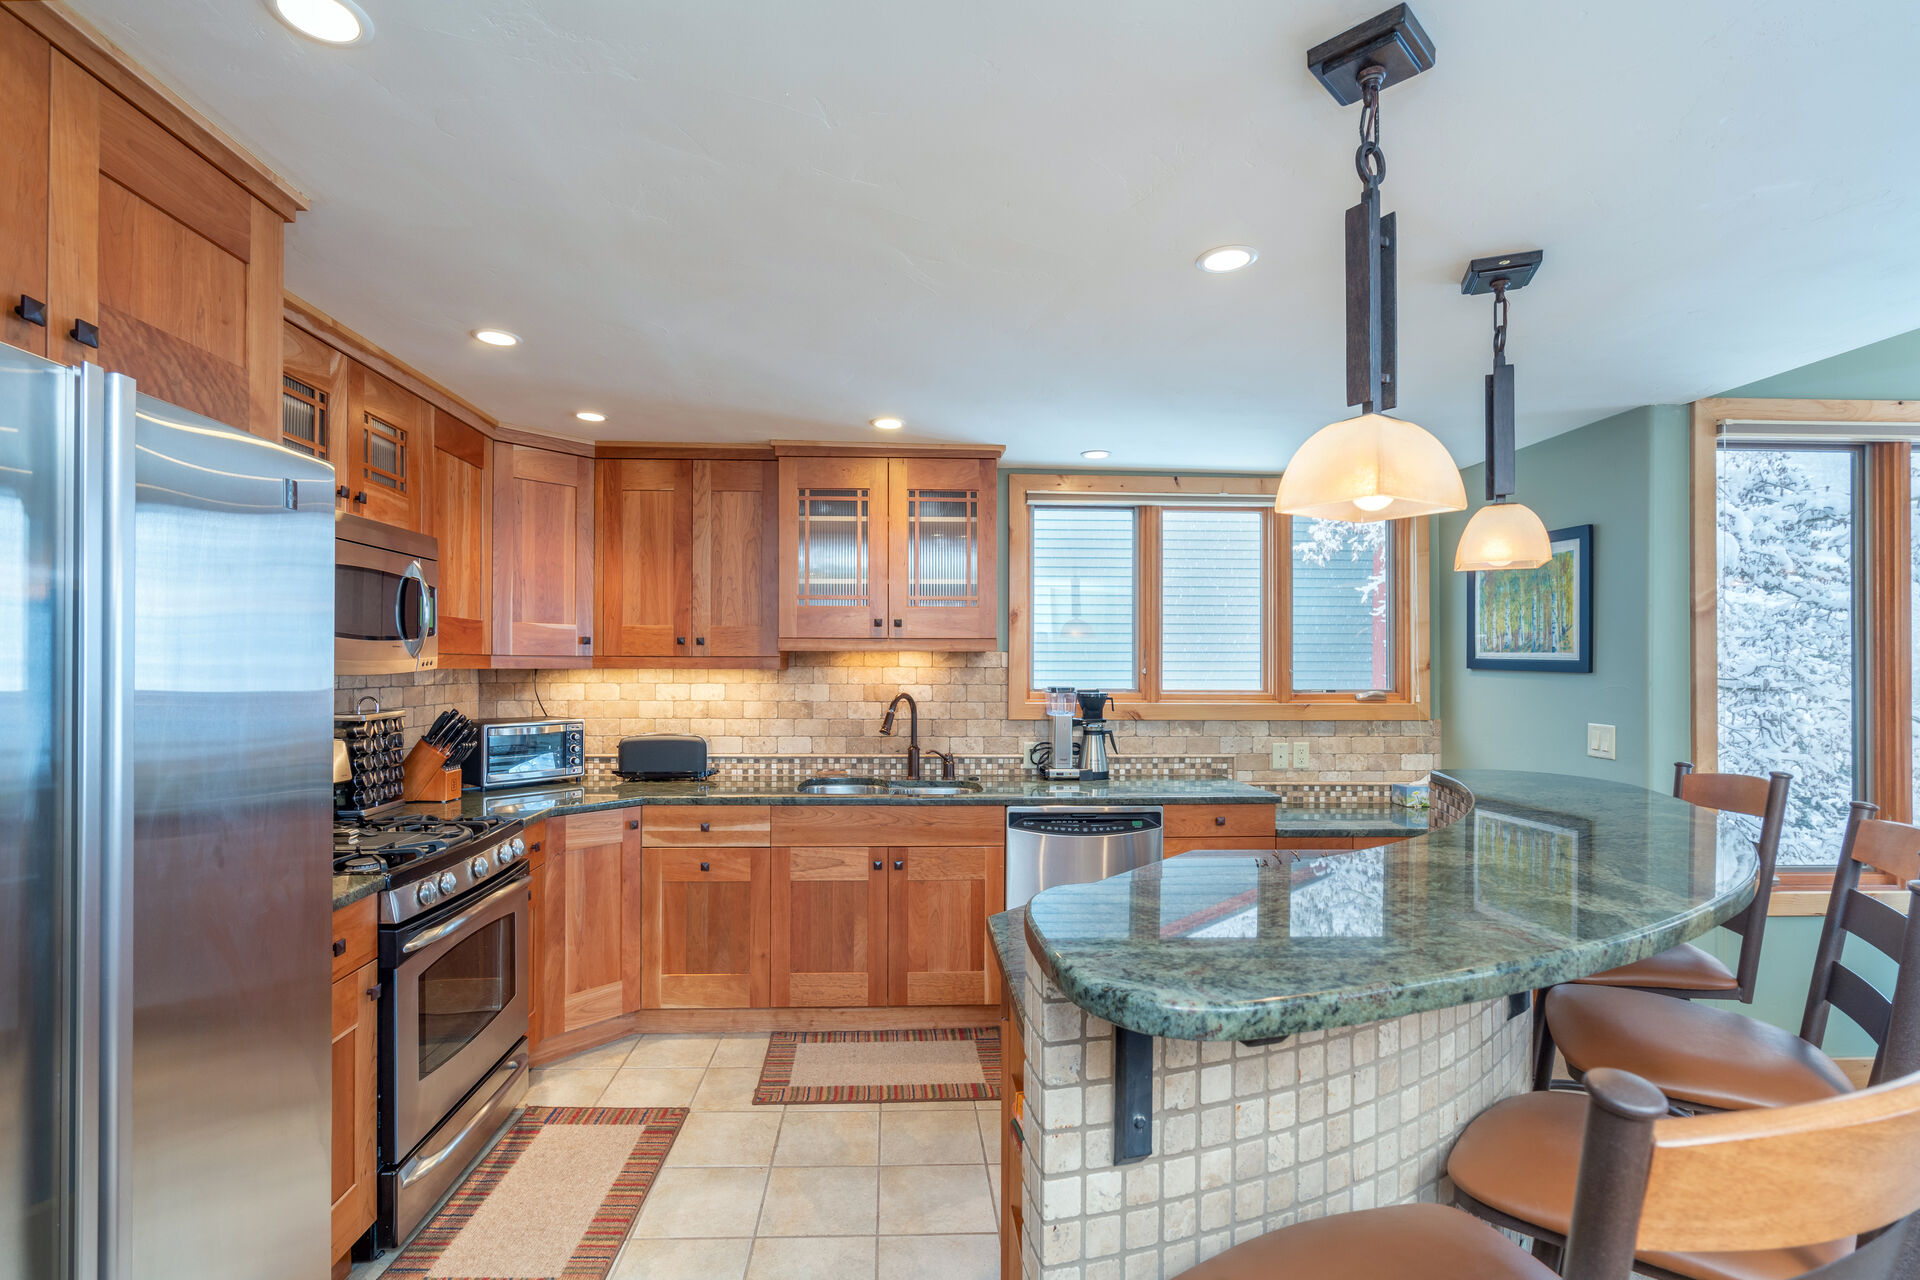 The fully equipped kitchen of this 2 bedroom condo in Telluride, with breakfast bar and stainless steel appliances.